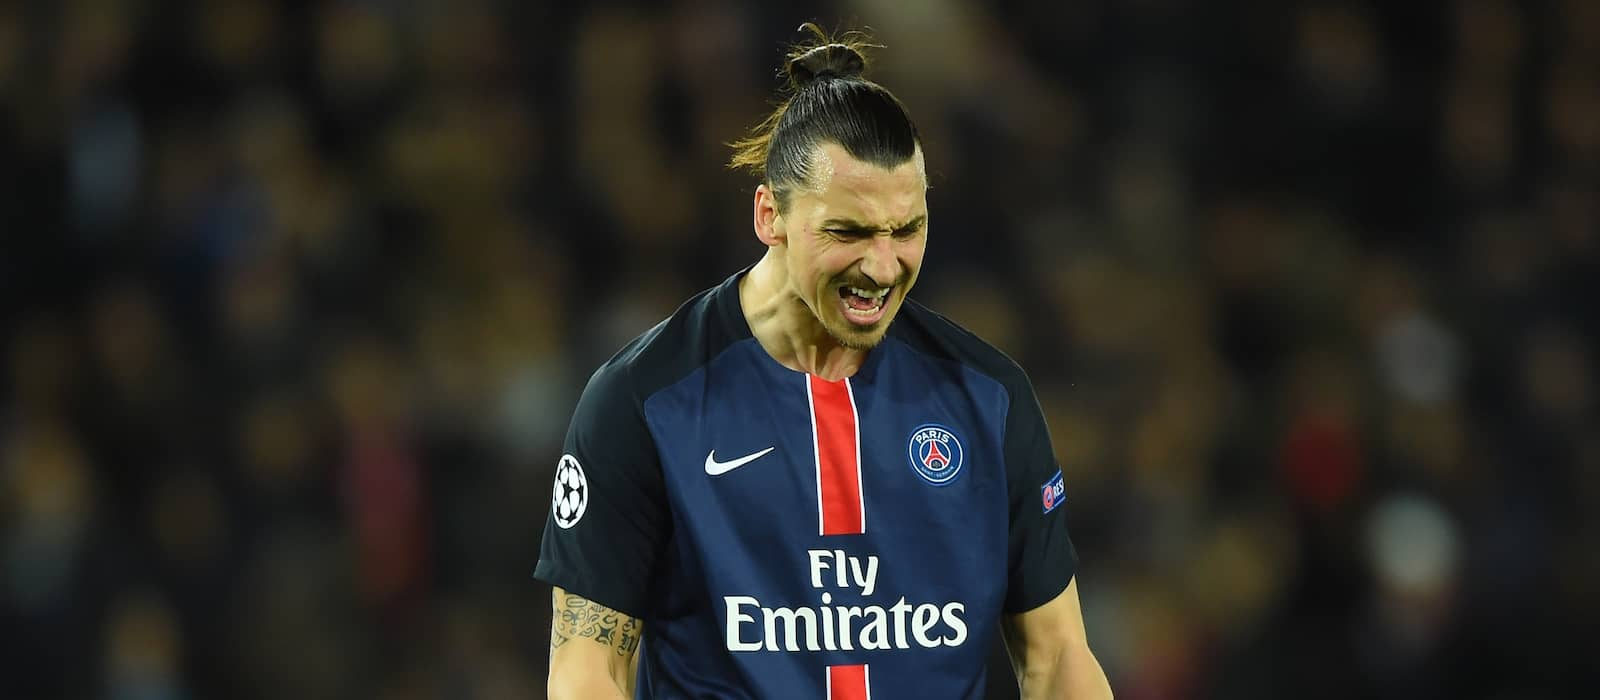 Zlatan Ibrahimovic: All this speculation will be over soon